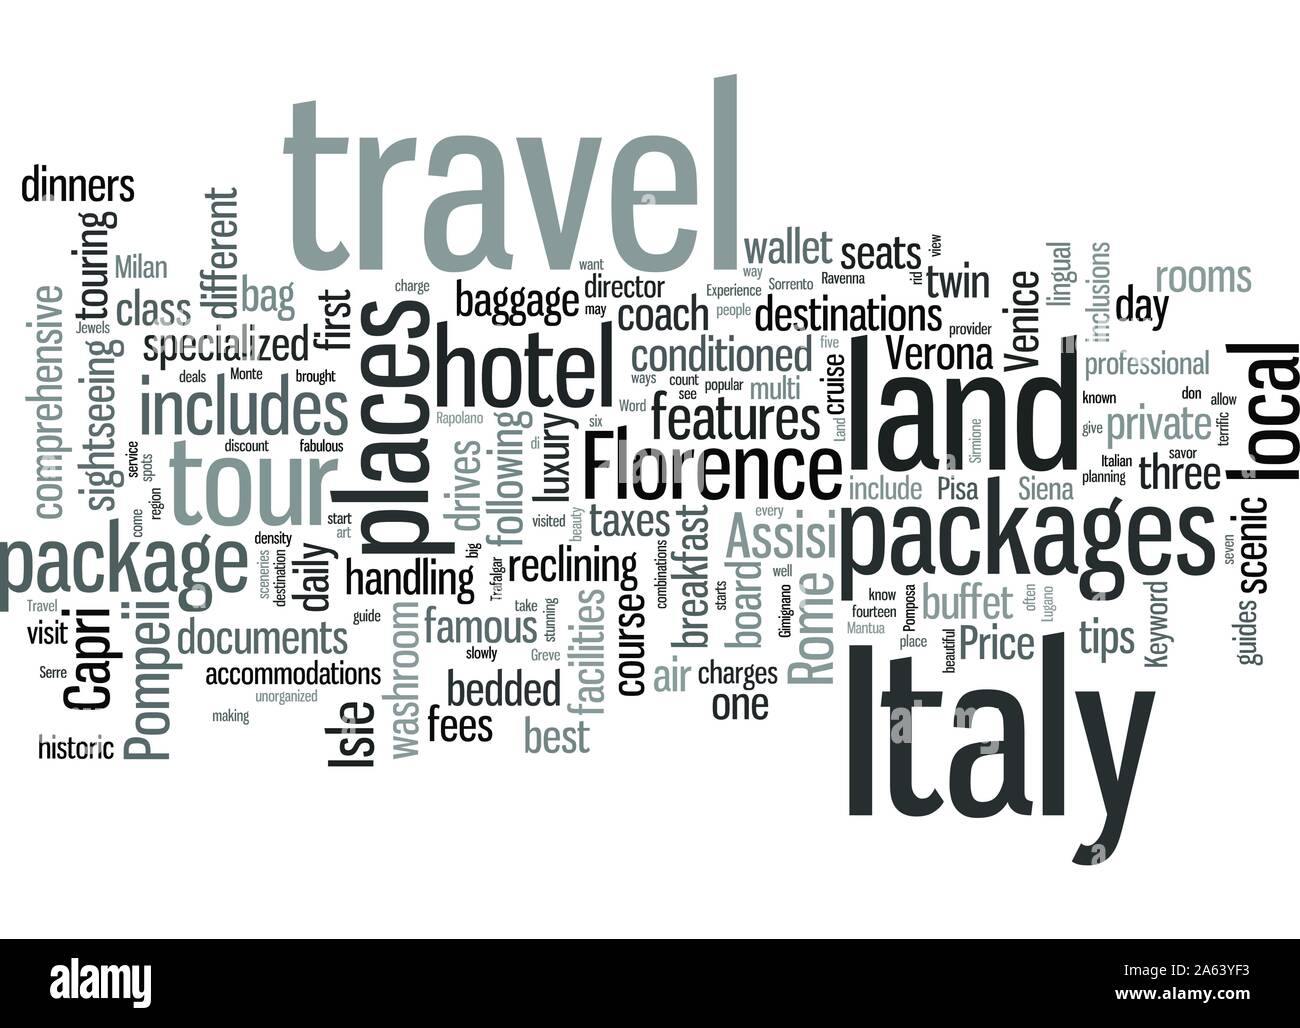 Italy Land Travel Packages Stock Vector